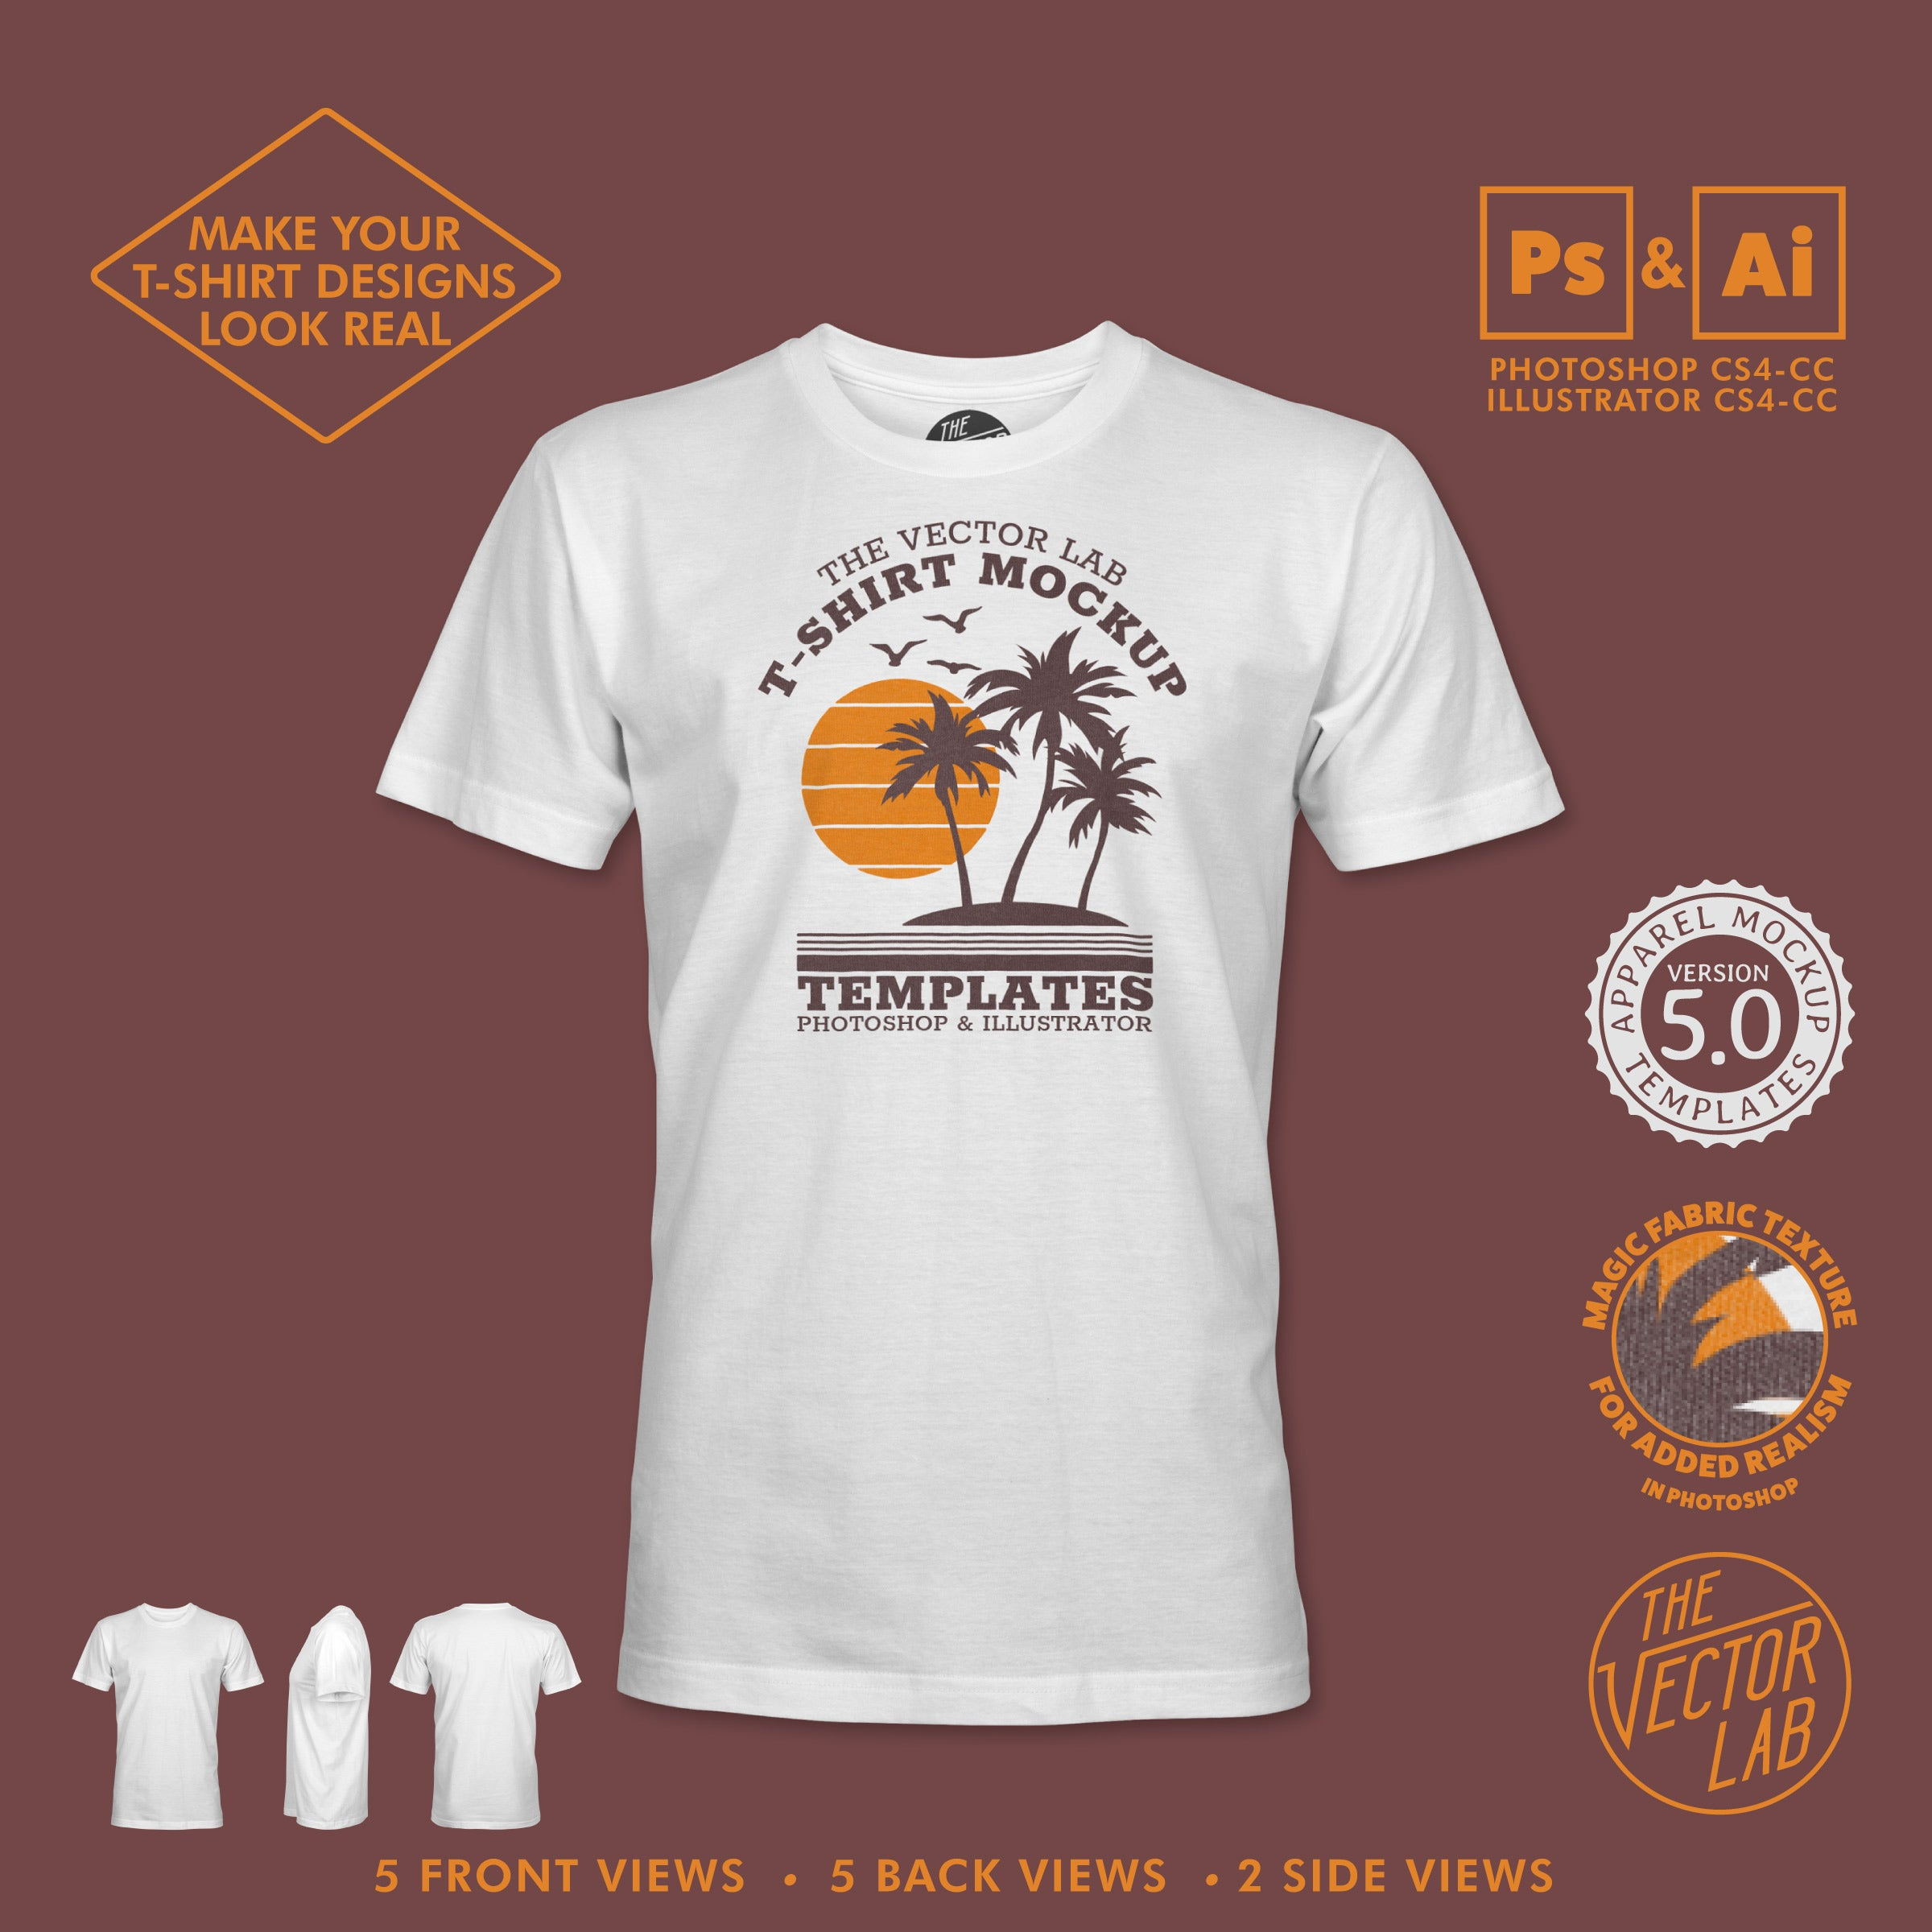 1f85a0ac ... Men's T-Shirt Mockup Templates for Photoshop and Illustrator ...